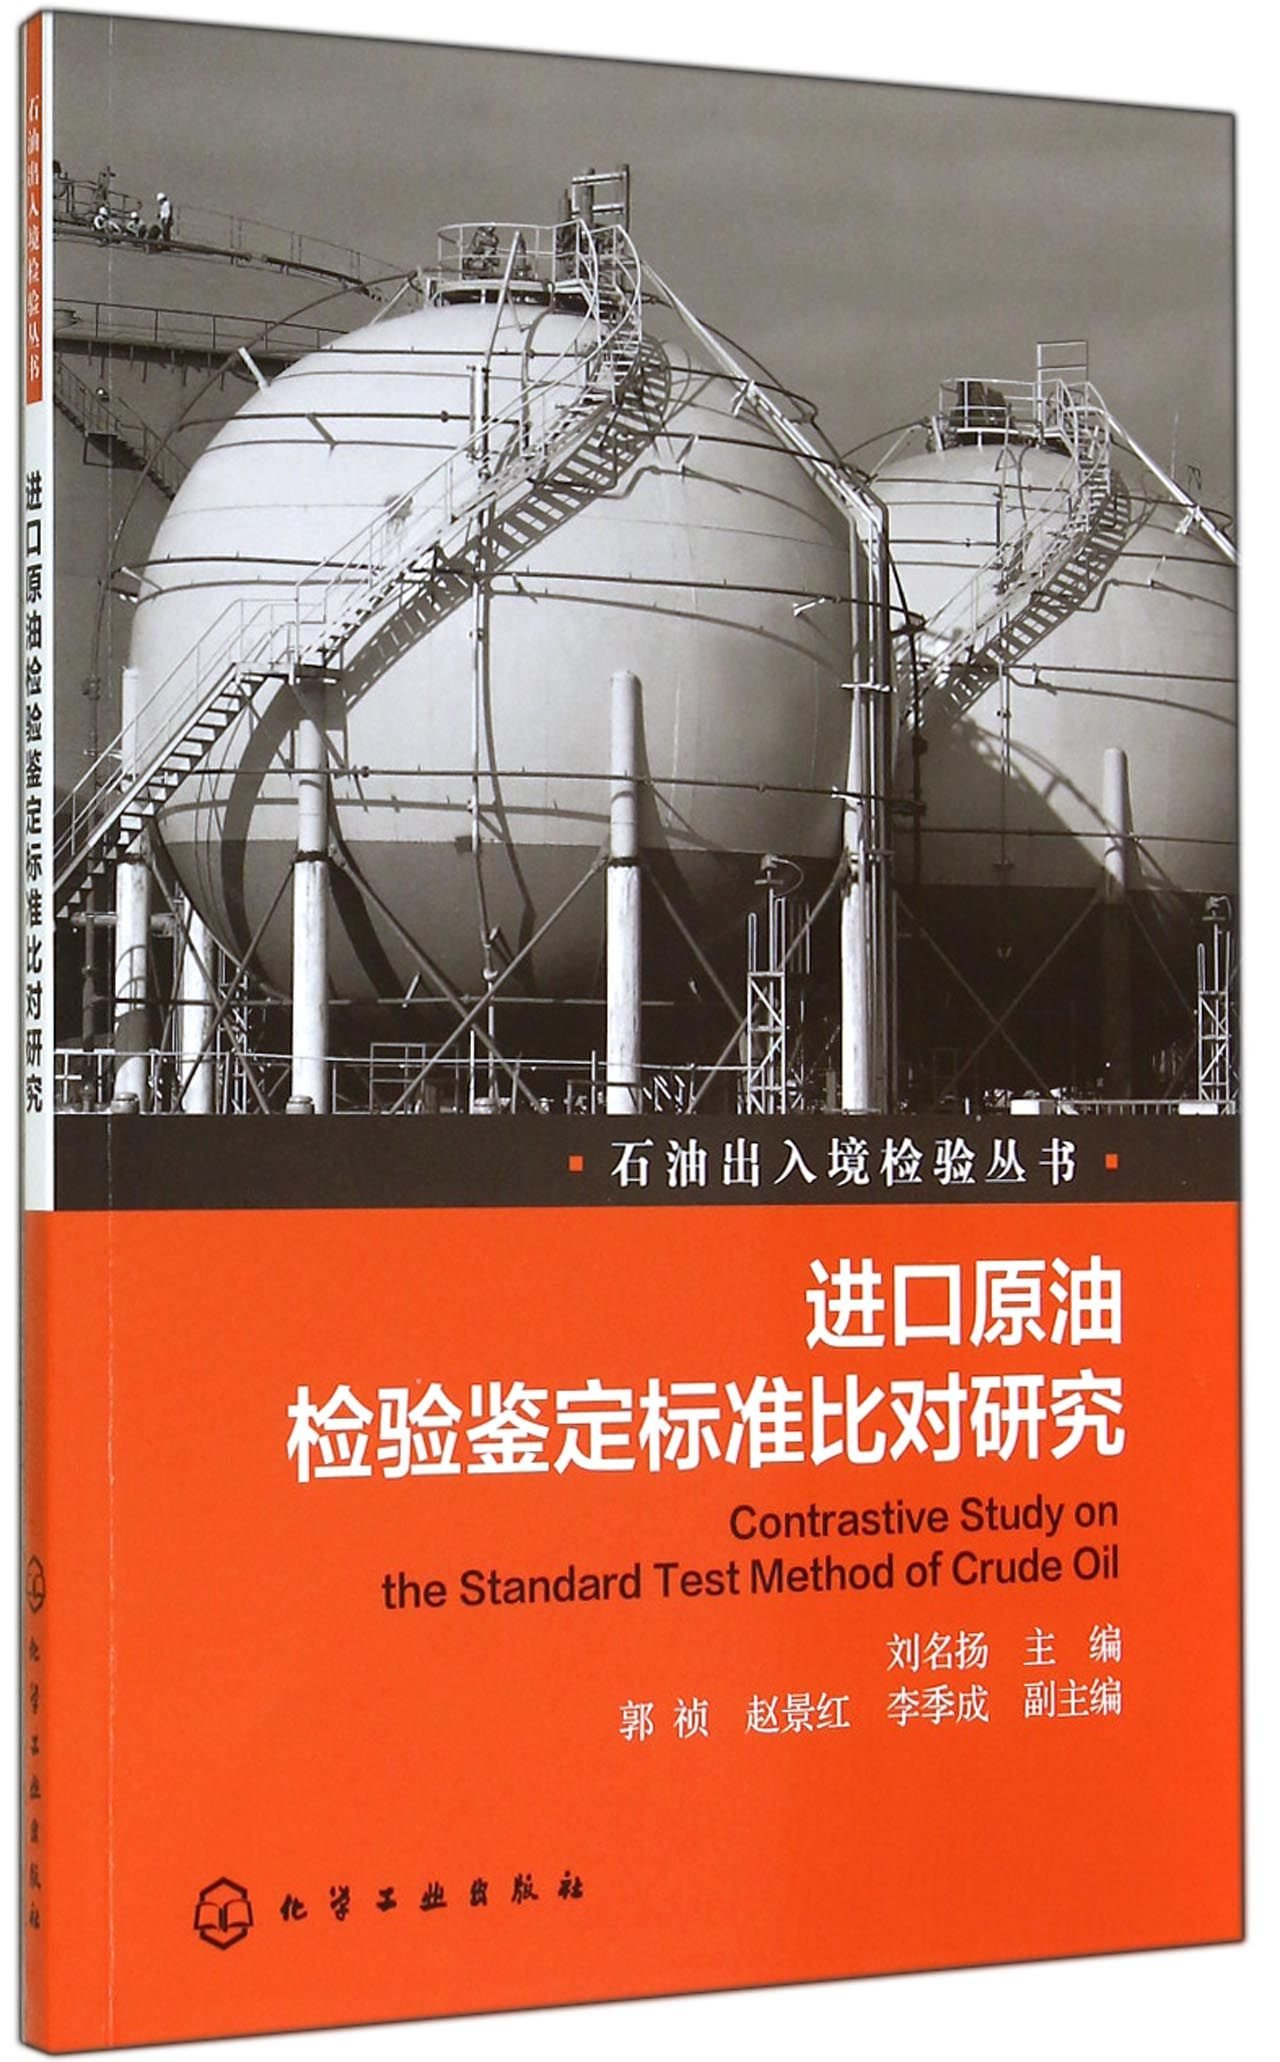 Oil exit inspection books - inspection and appraisal standards than the study of imported crude oil(Chinese Edition) pdf